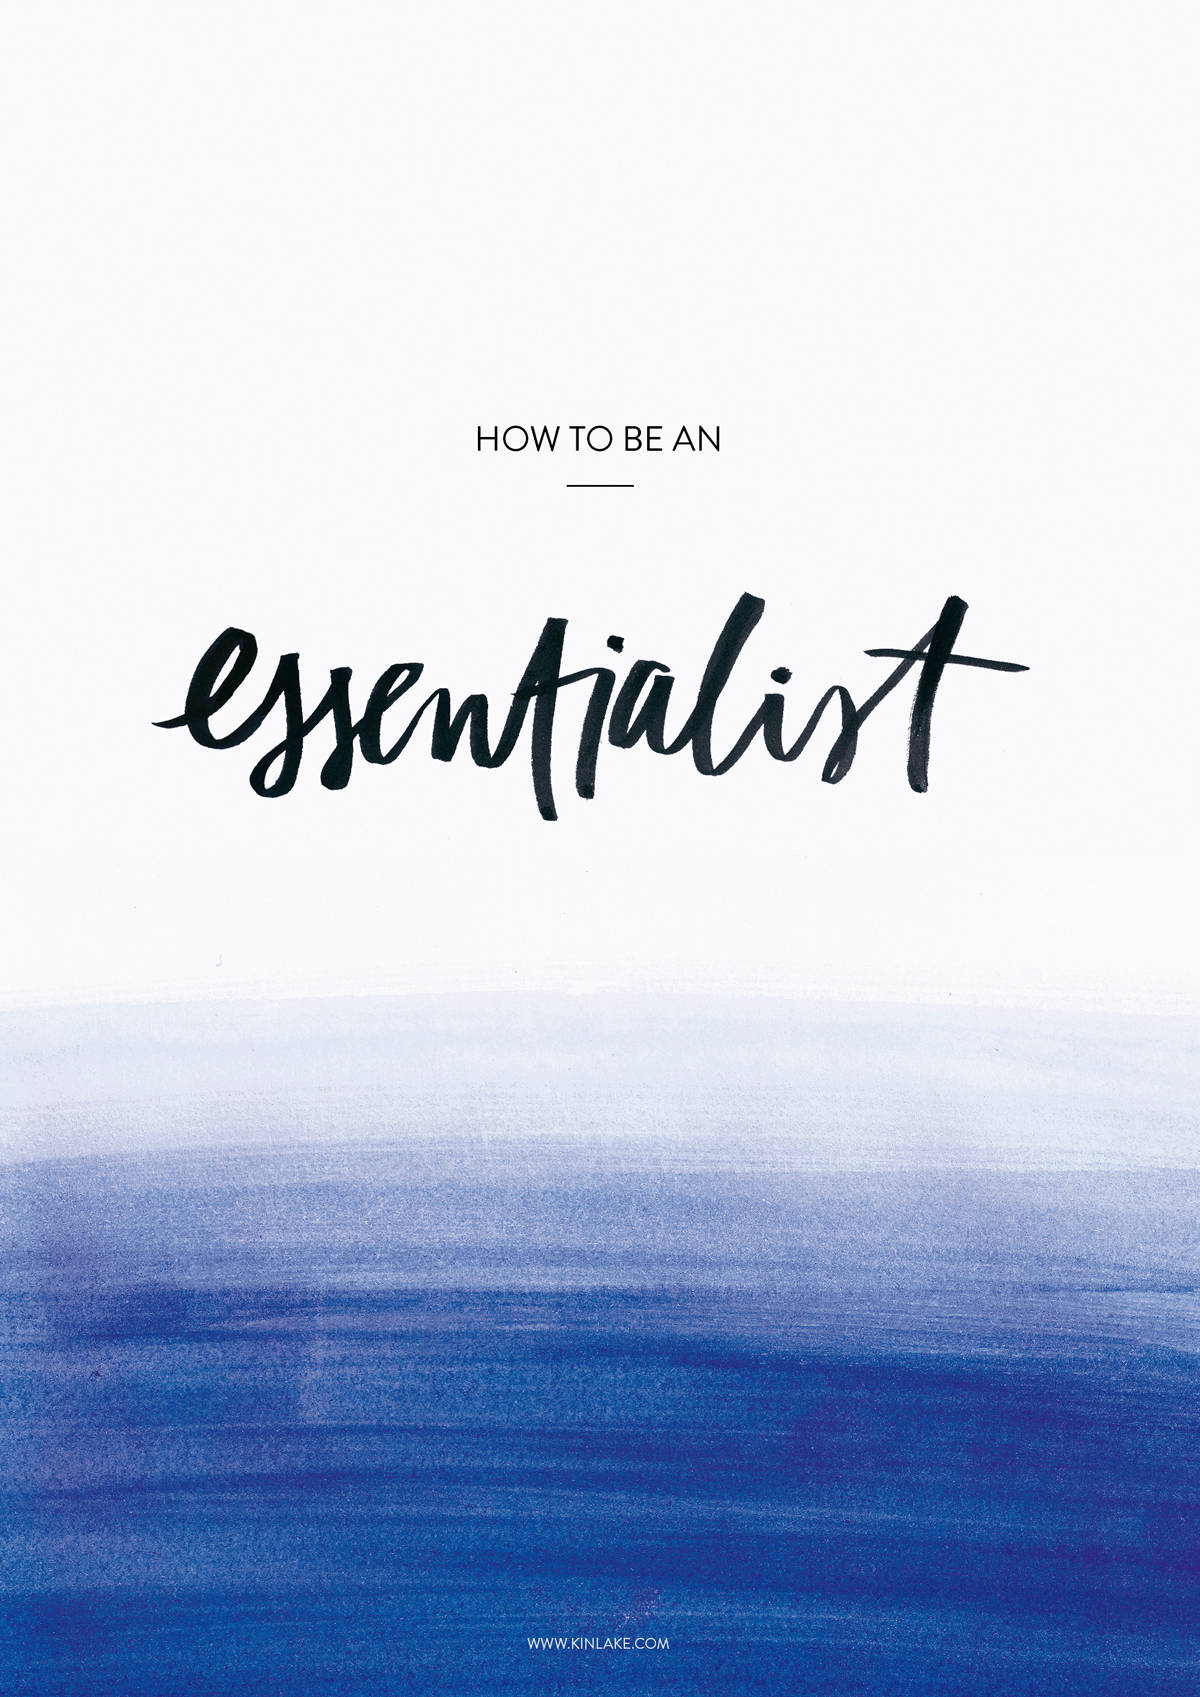 How-To-Be-An-Essentialist